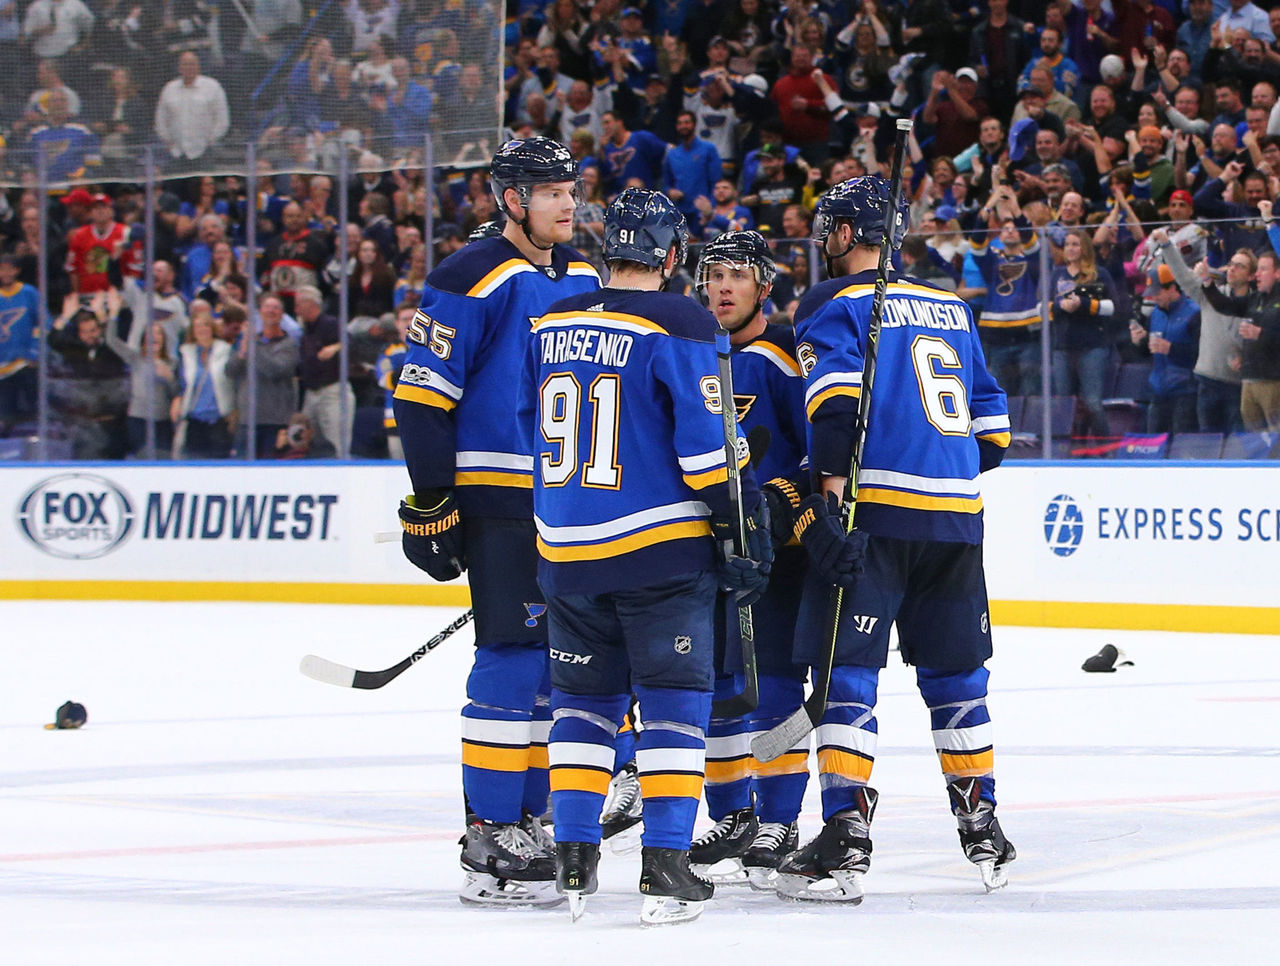 Cropped 2017 10 19t030016z 2138512906 nocid rtrmadp 3 nhl chicago blackhawks at st louis blues